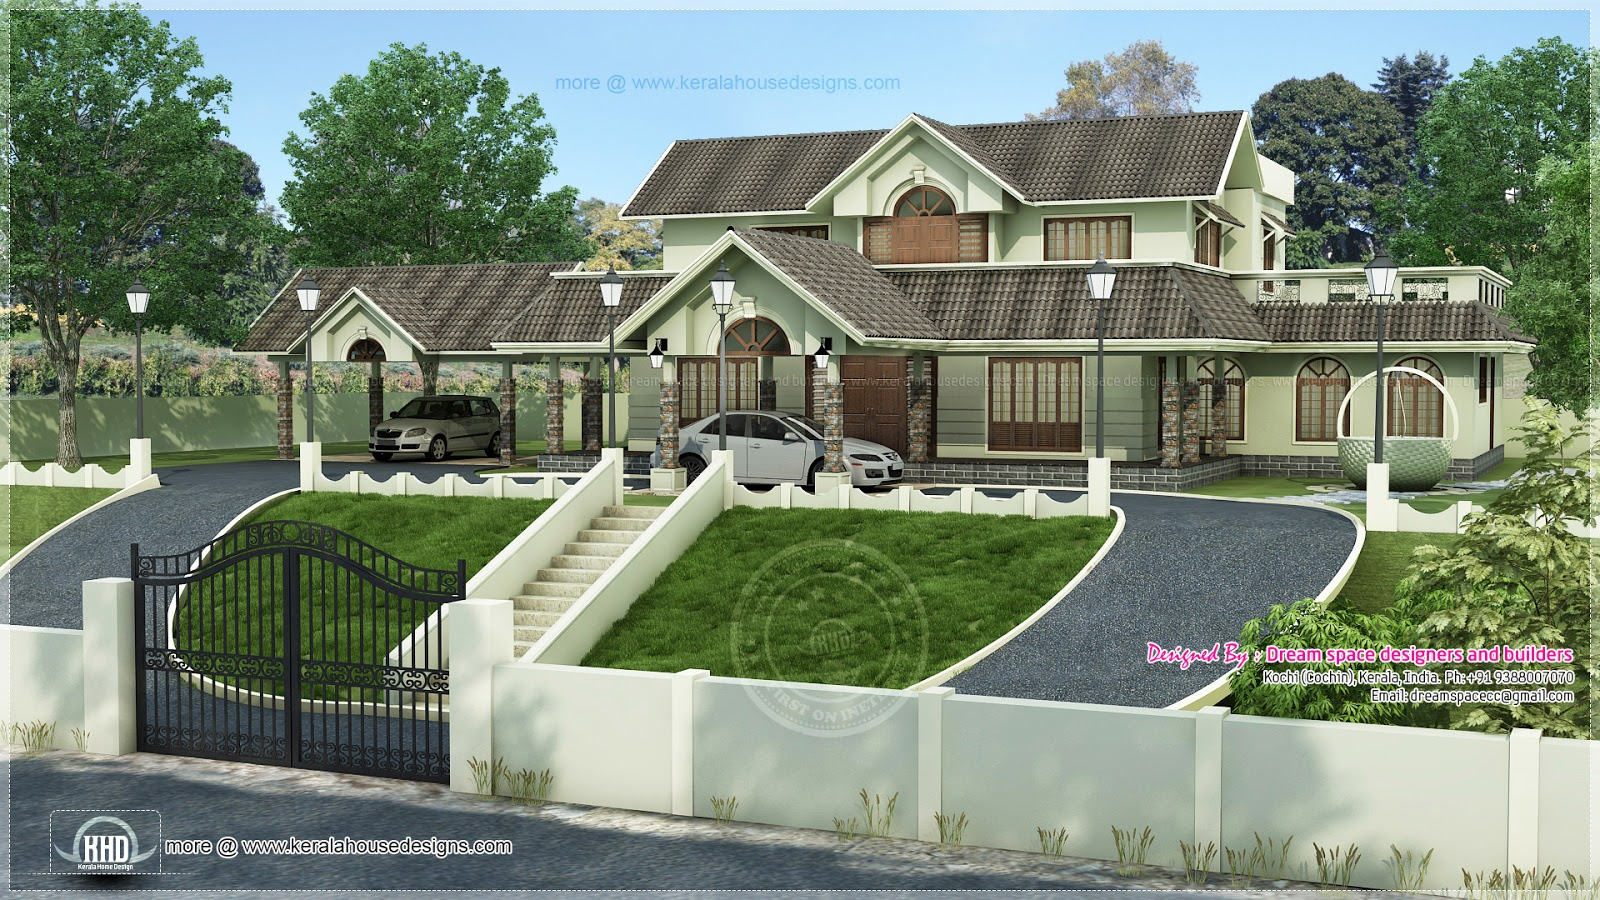 ideal home design. Hillside home design Ideal in a hillside plot above the road level  Kerala